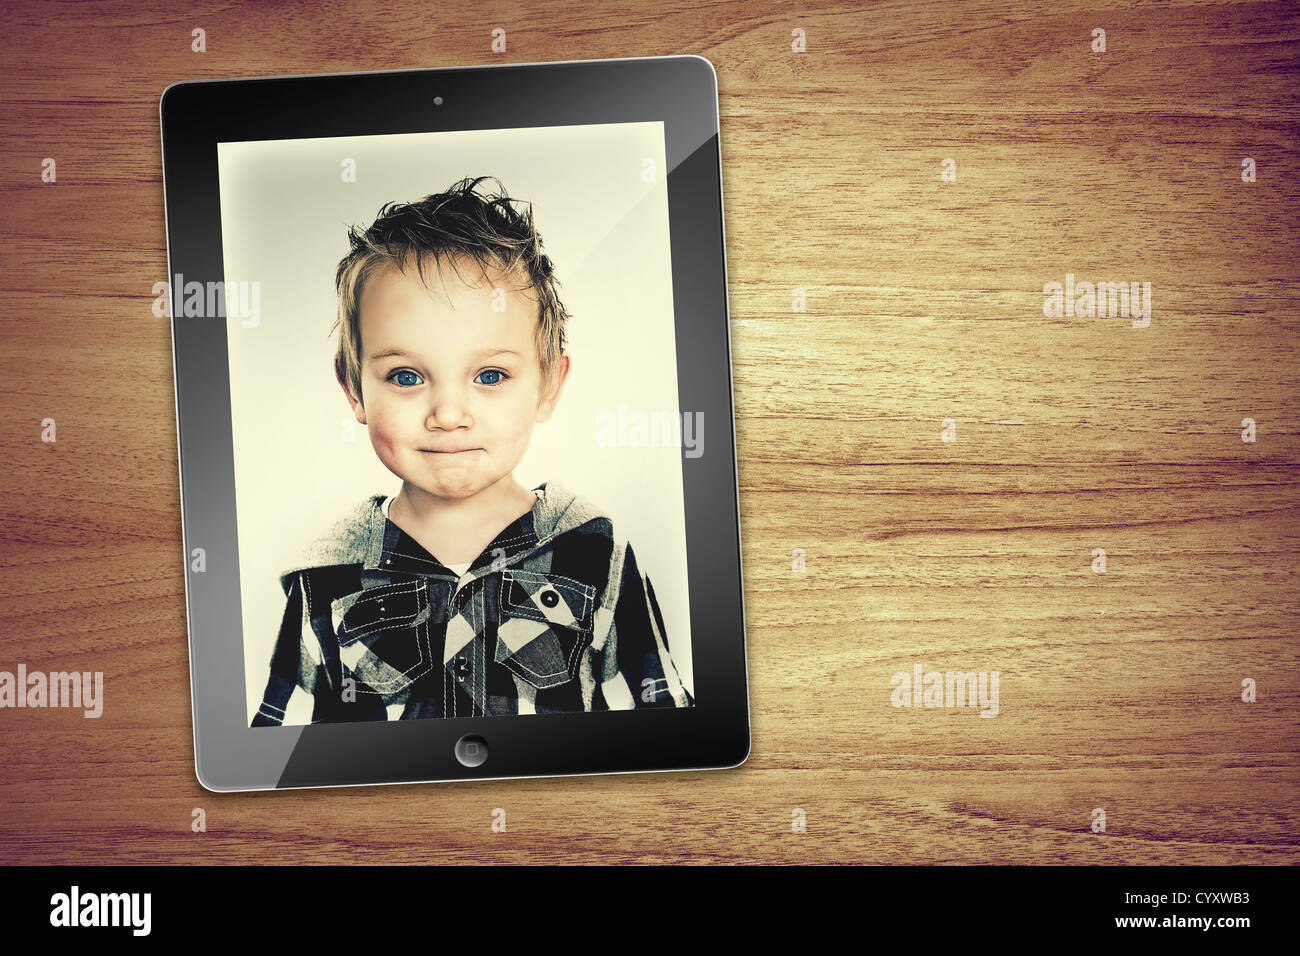 portrait of young boy on tablet - Stock Image